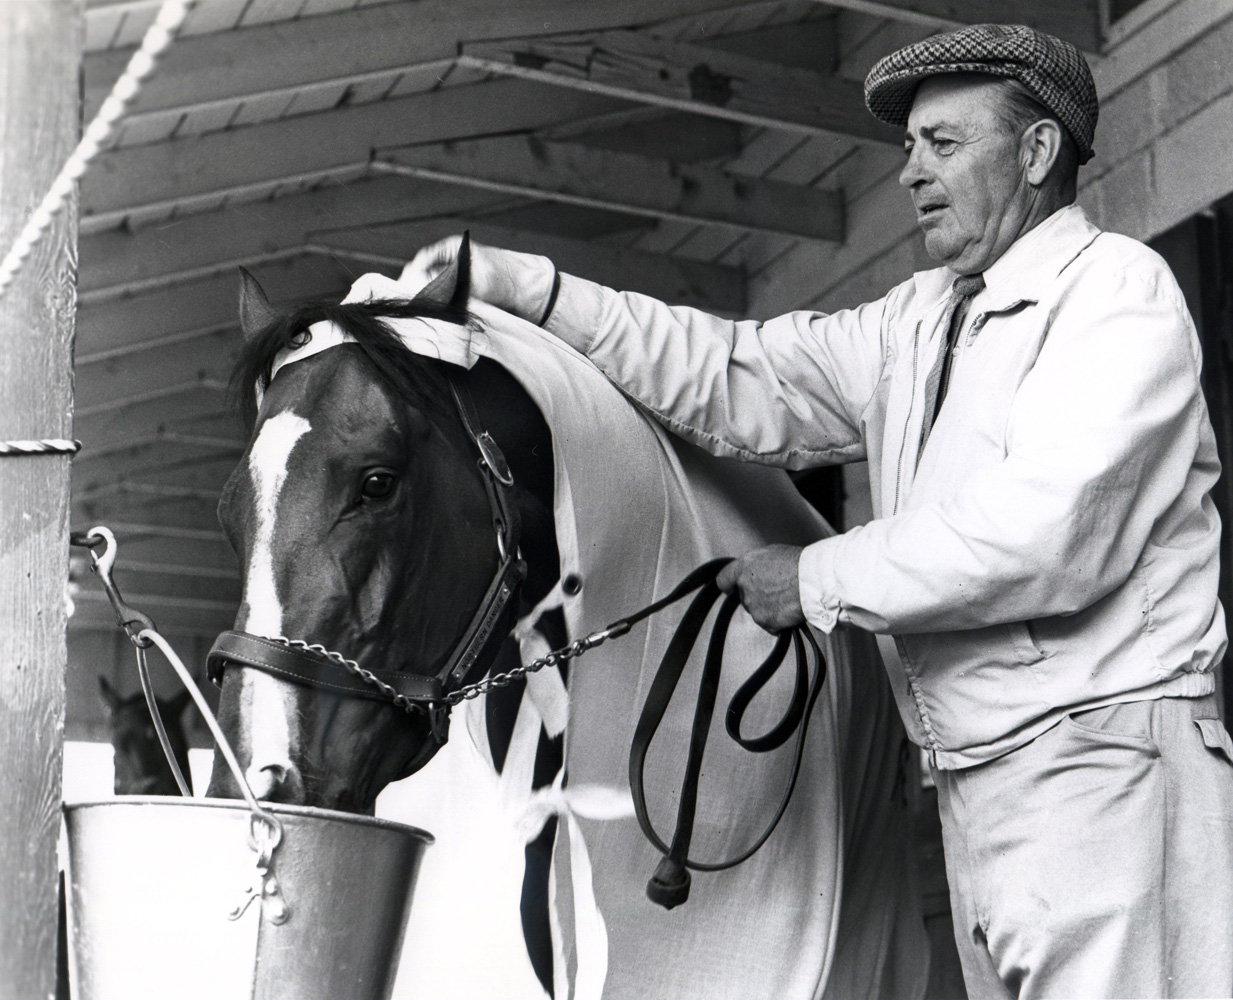 Horatio Luro and Northern Dancer in the barns at Woodbine in 1964 (Michael Burns/Museum Collection)